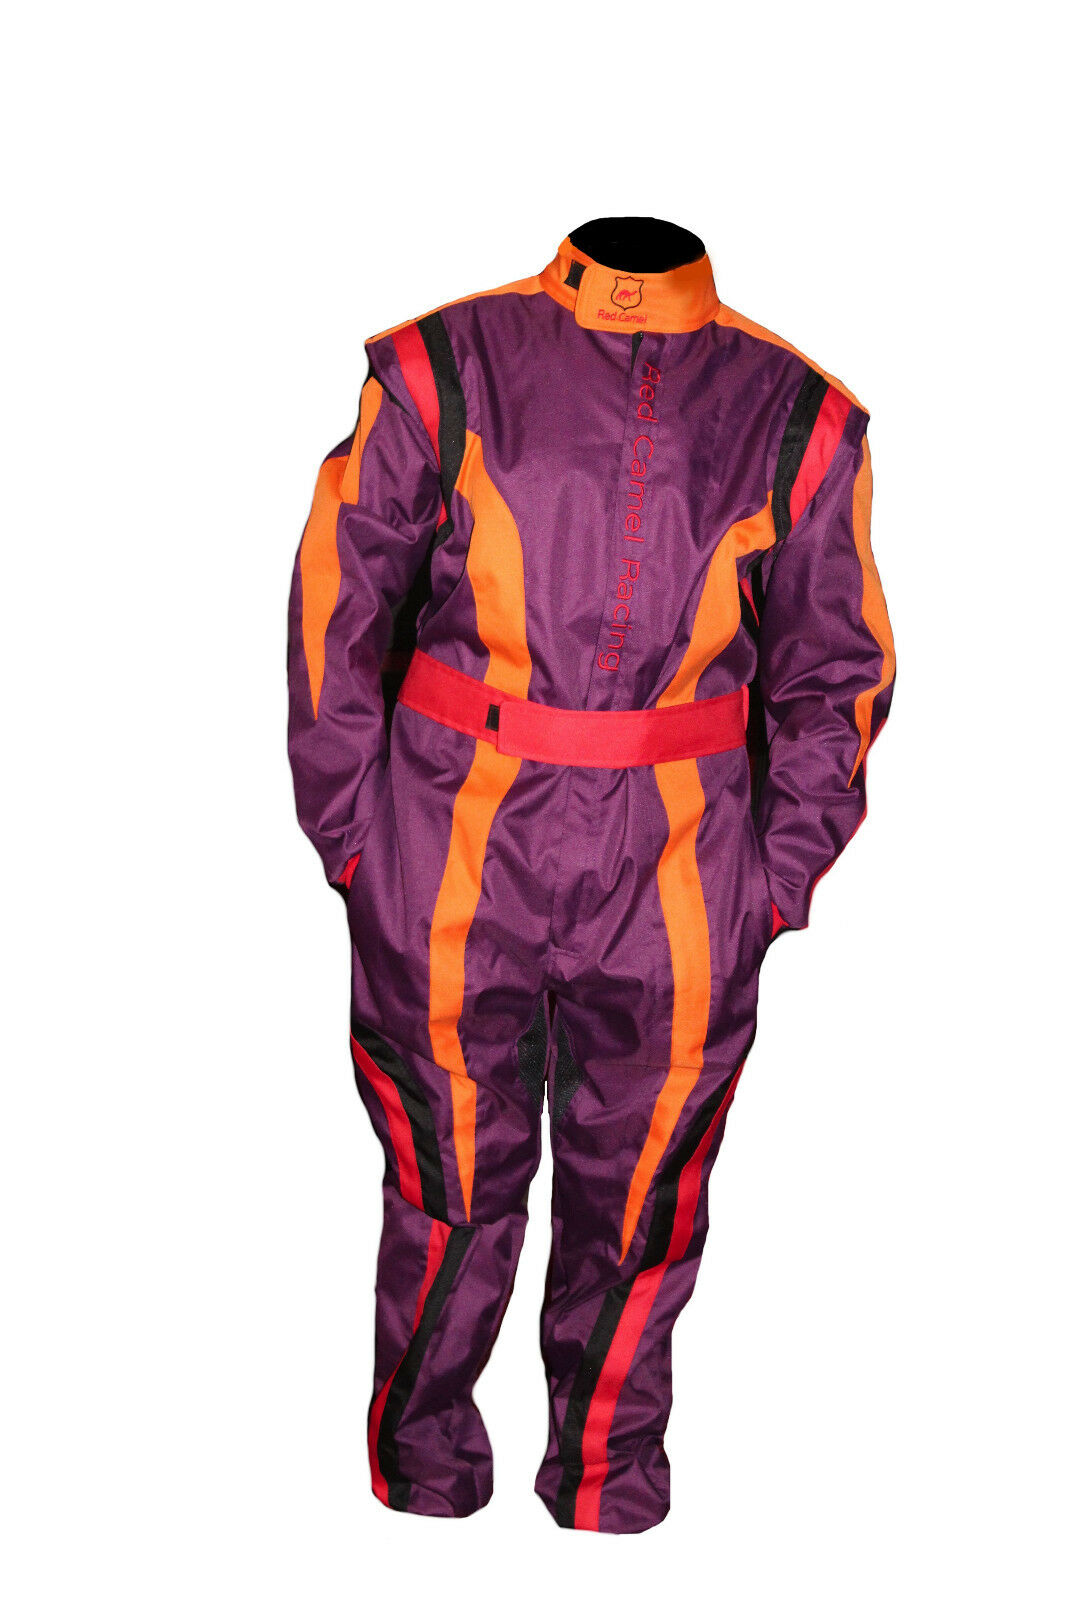 Go kart race  suit CIK FIA Level 2 approved  online shopping sports